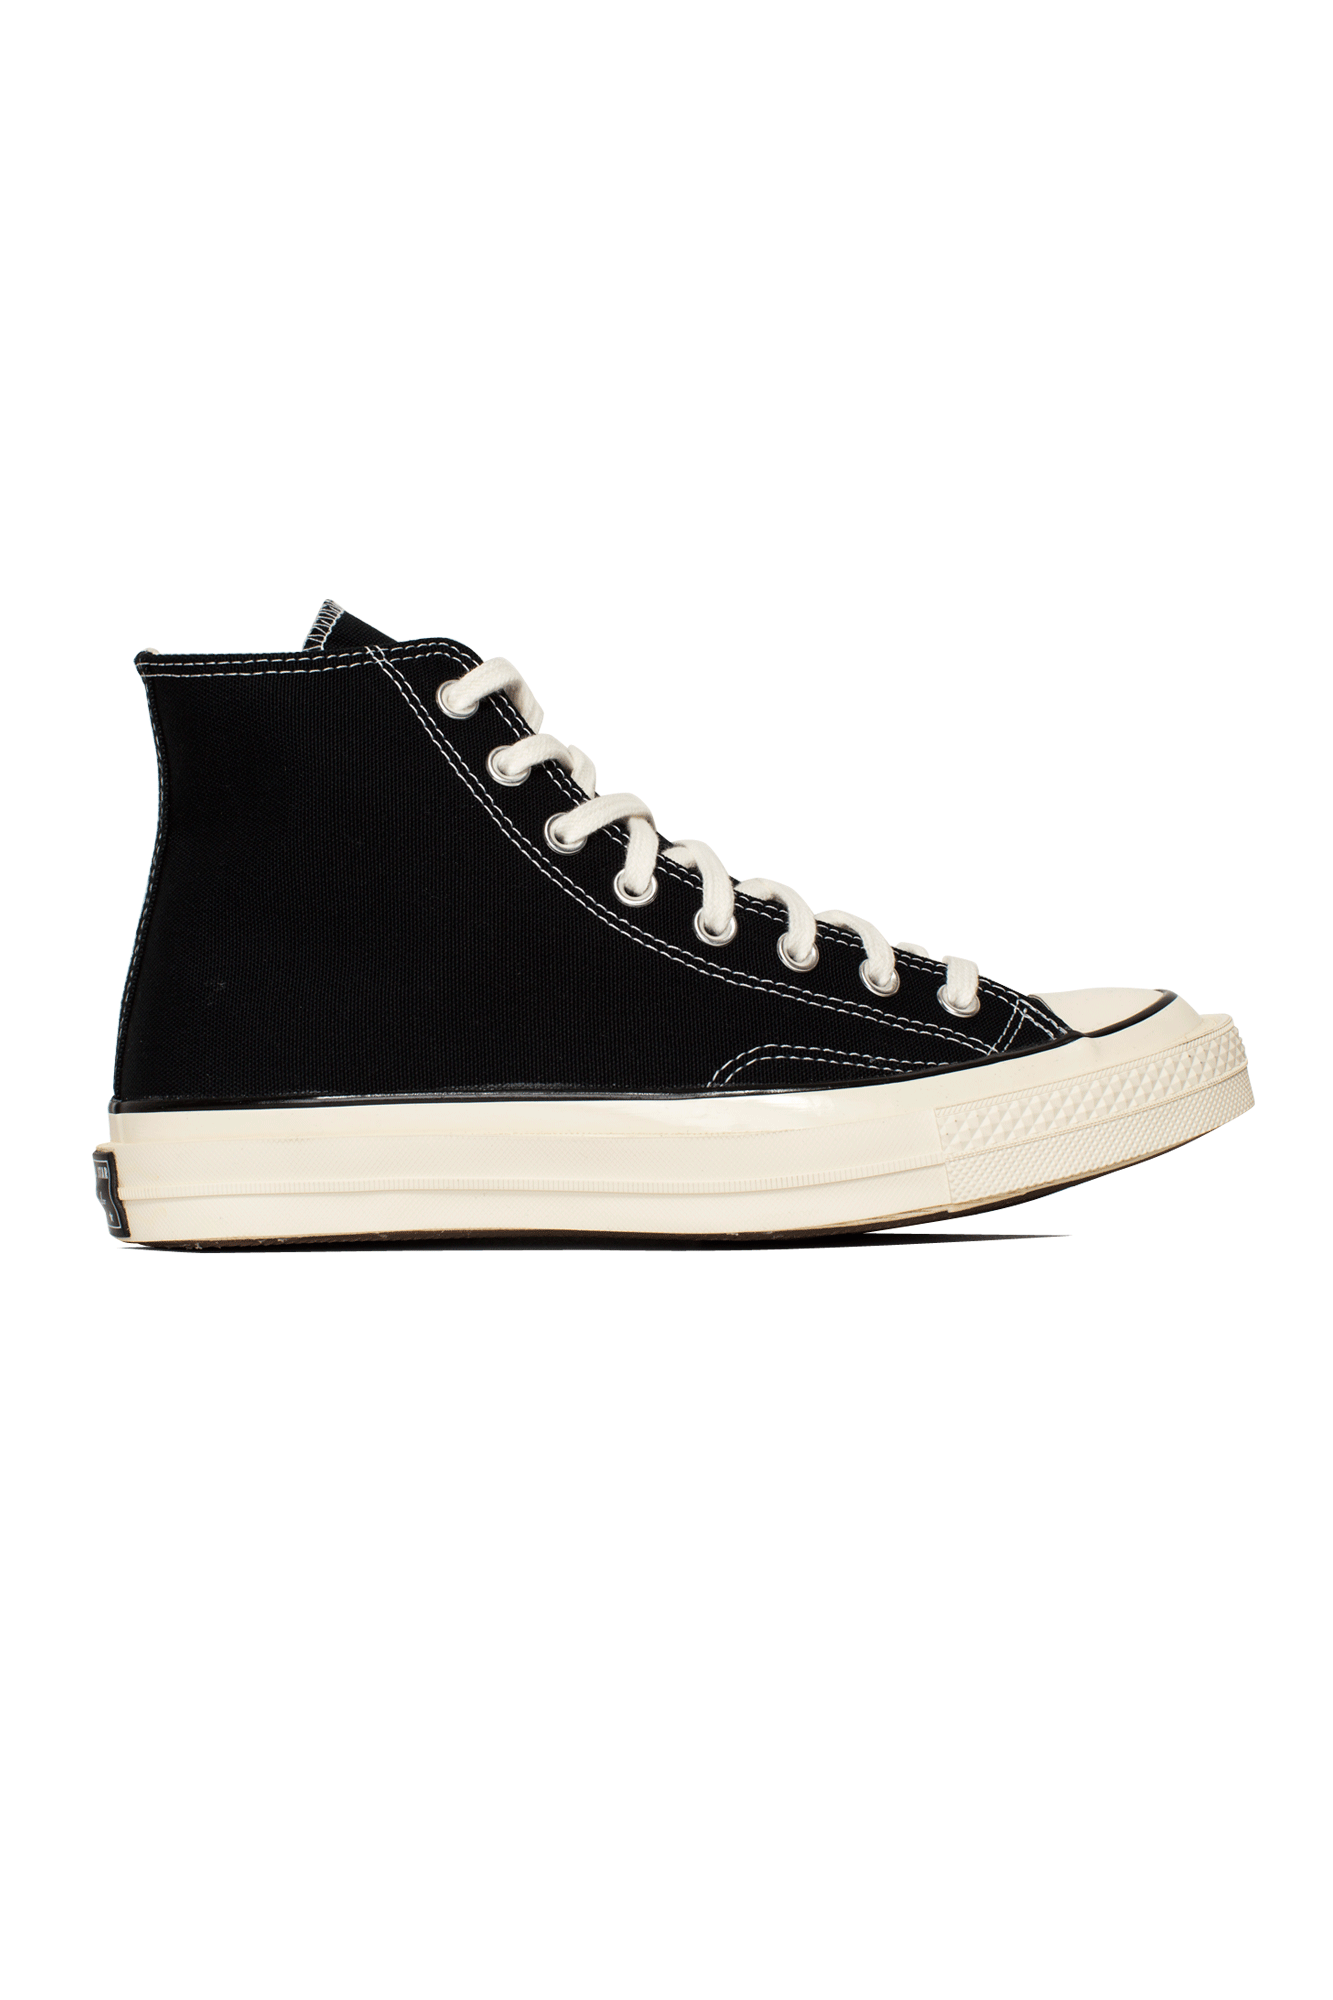 "Converse Sneakers Chuck 70 Canvas LTD Hi ""Double Foxing"" Black 169145C#000#001#4 - One Block Down"